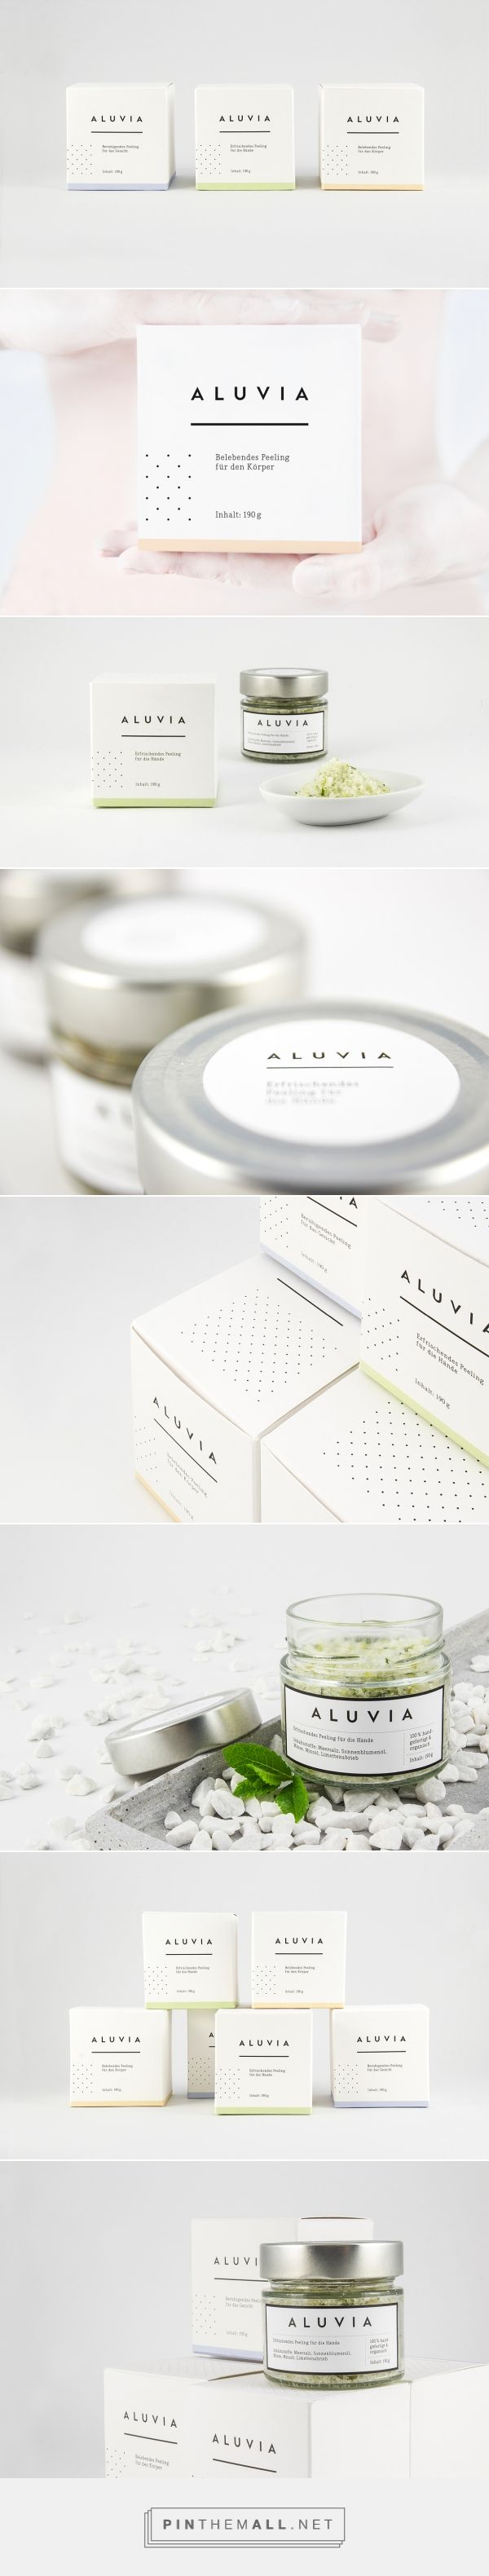 Aluvia // Aluvia is a purely fictional concept for high-quality, hand-crafted, natural exfoliants for the body.